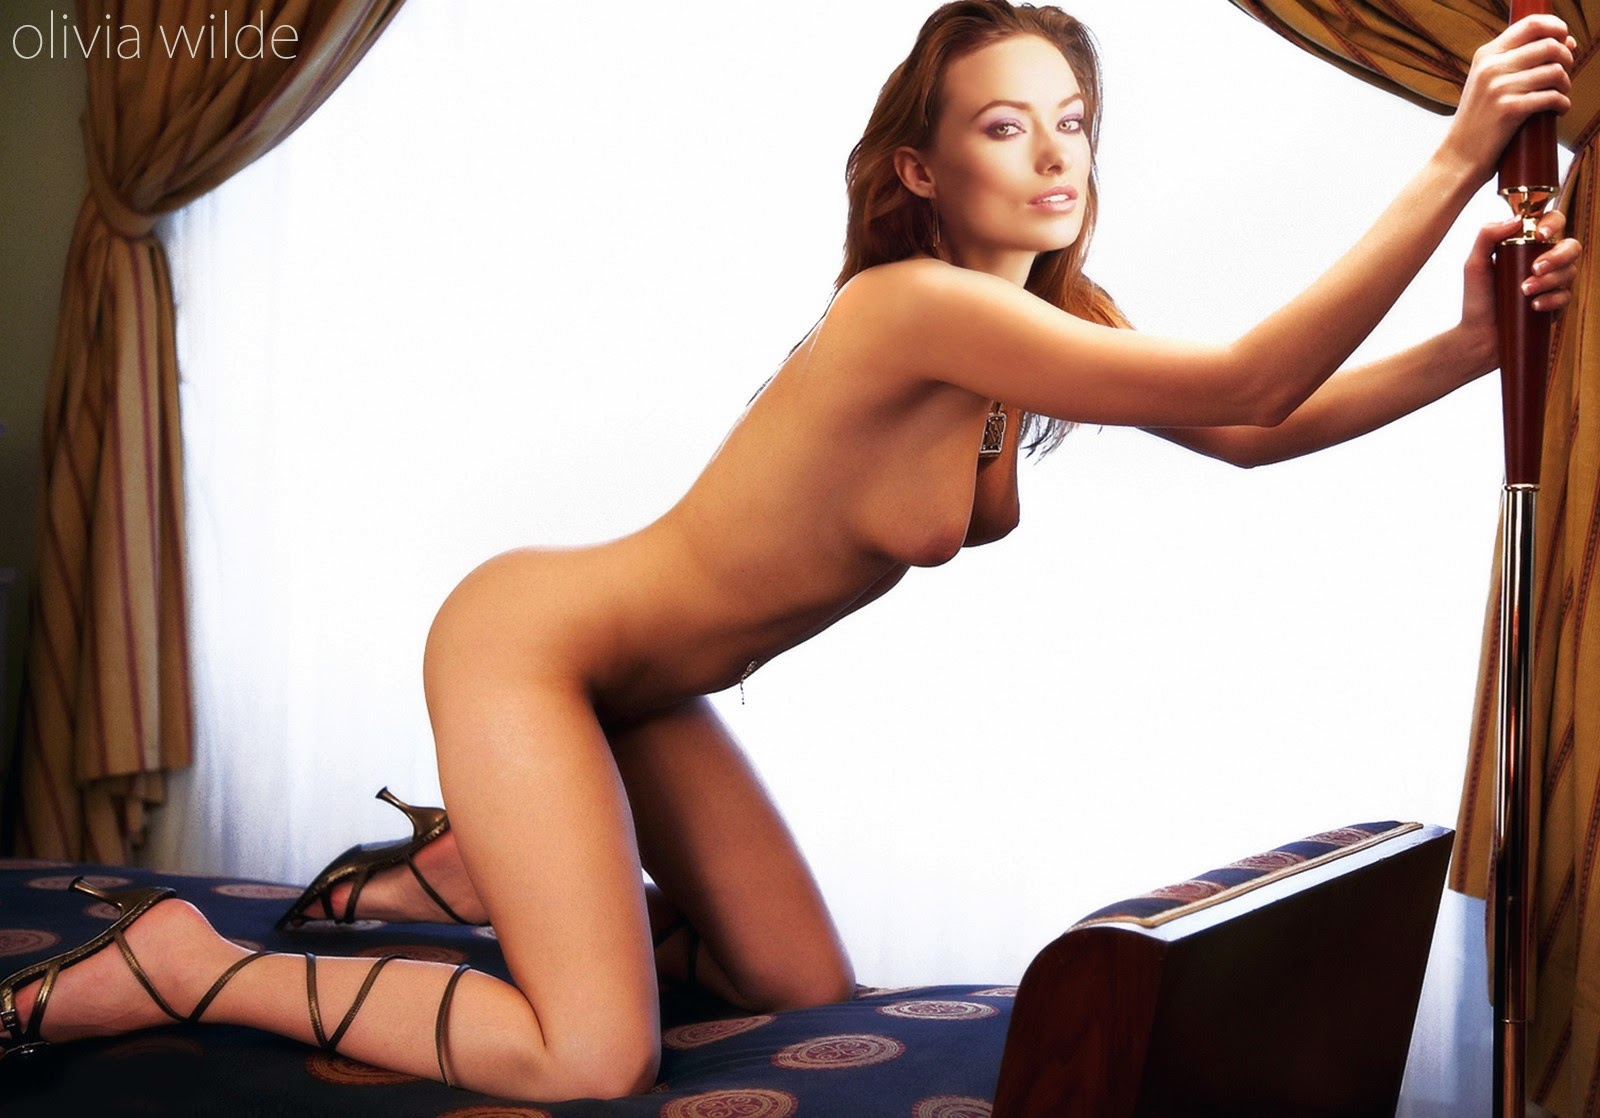 Think, Olivia wilde nude fakes tumblr